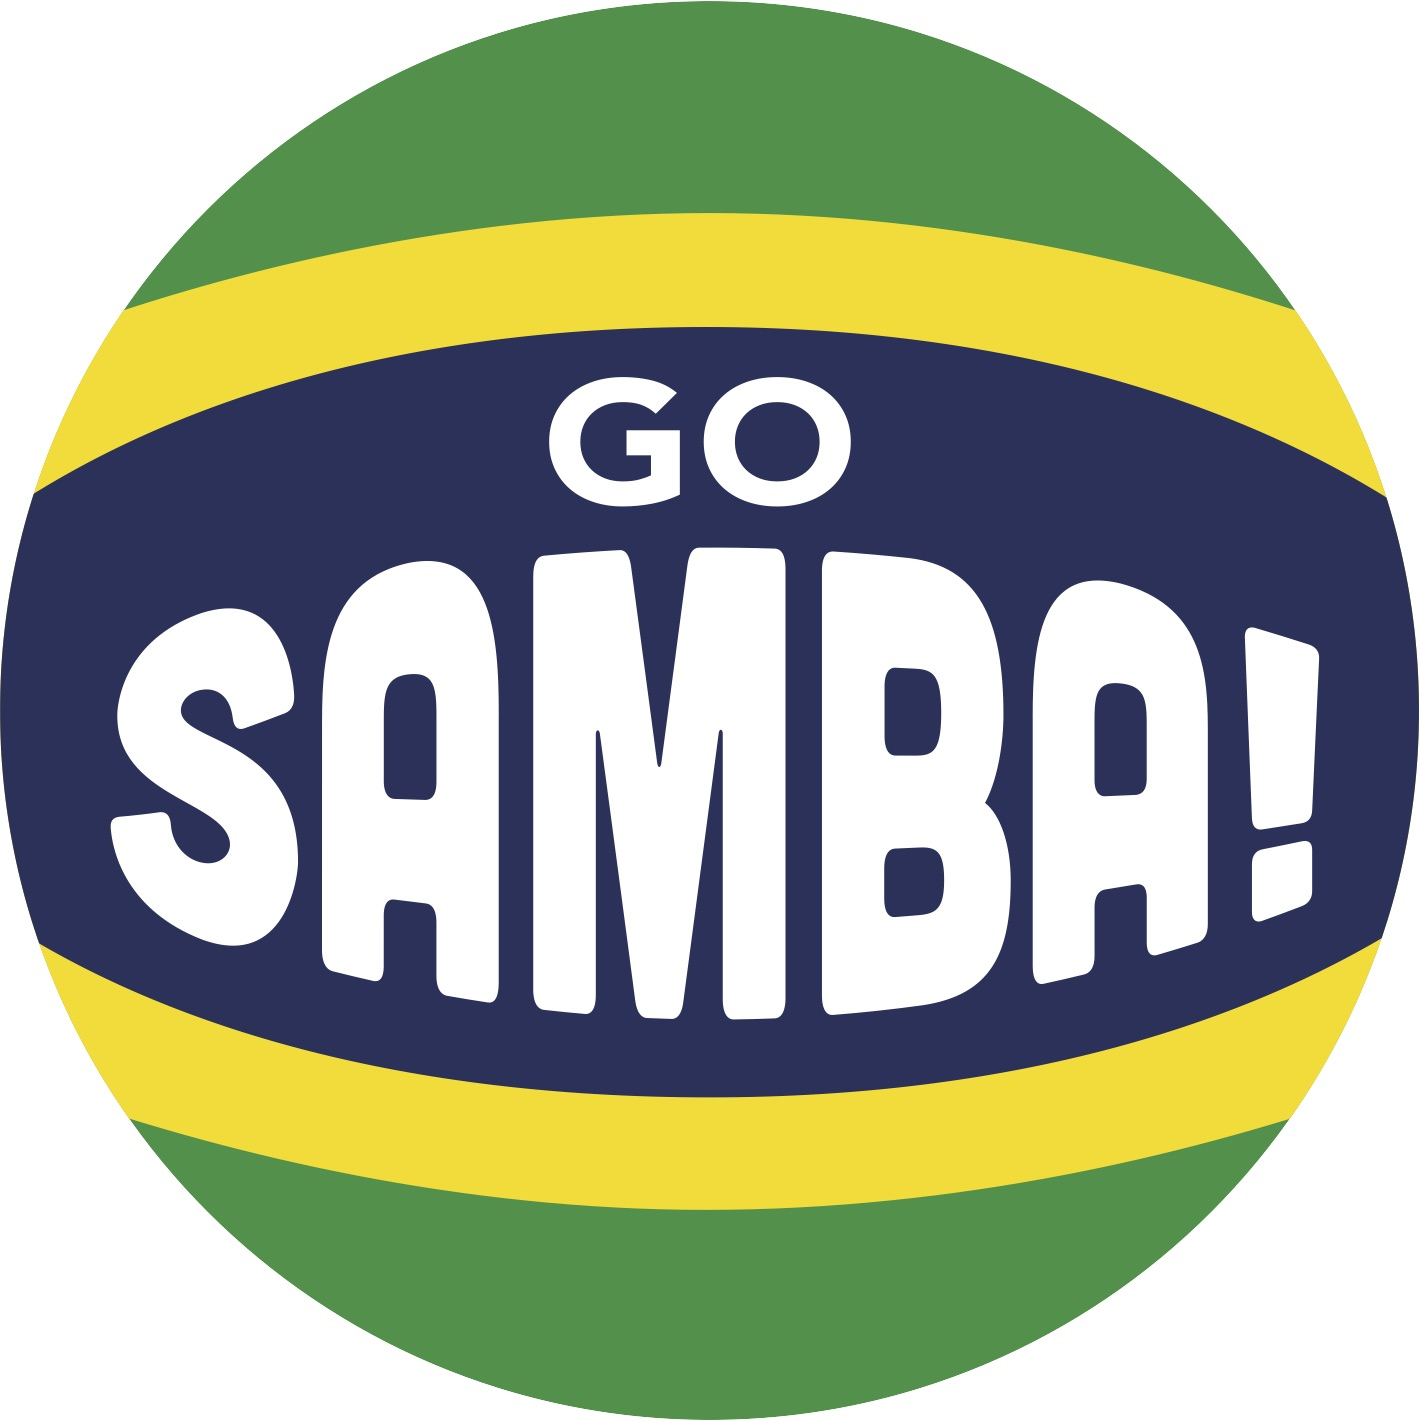 This episode is sponsored by GoSamba.net! - Brazilian drums in the USA!